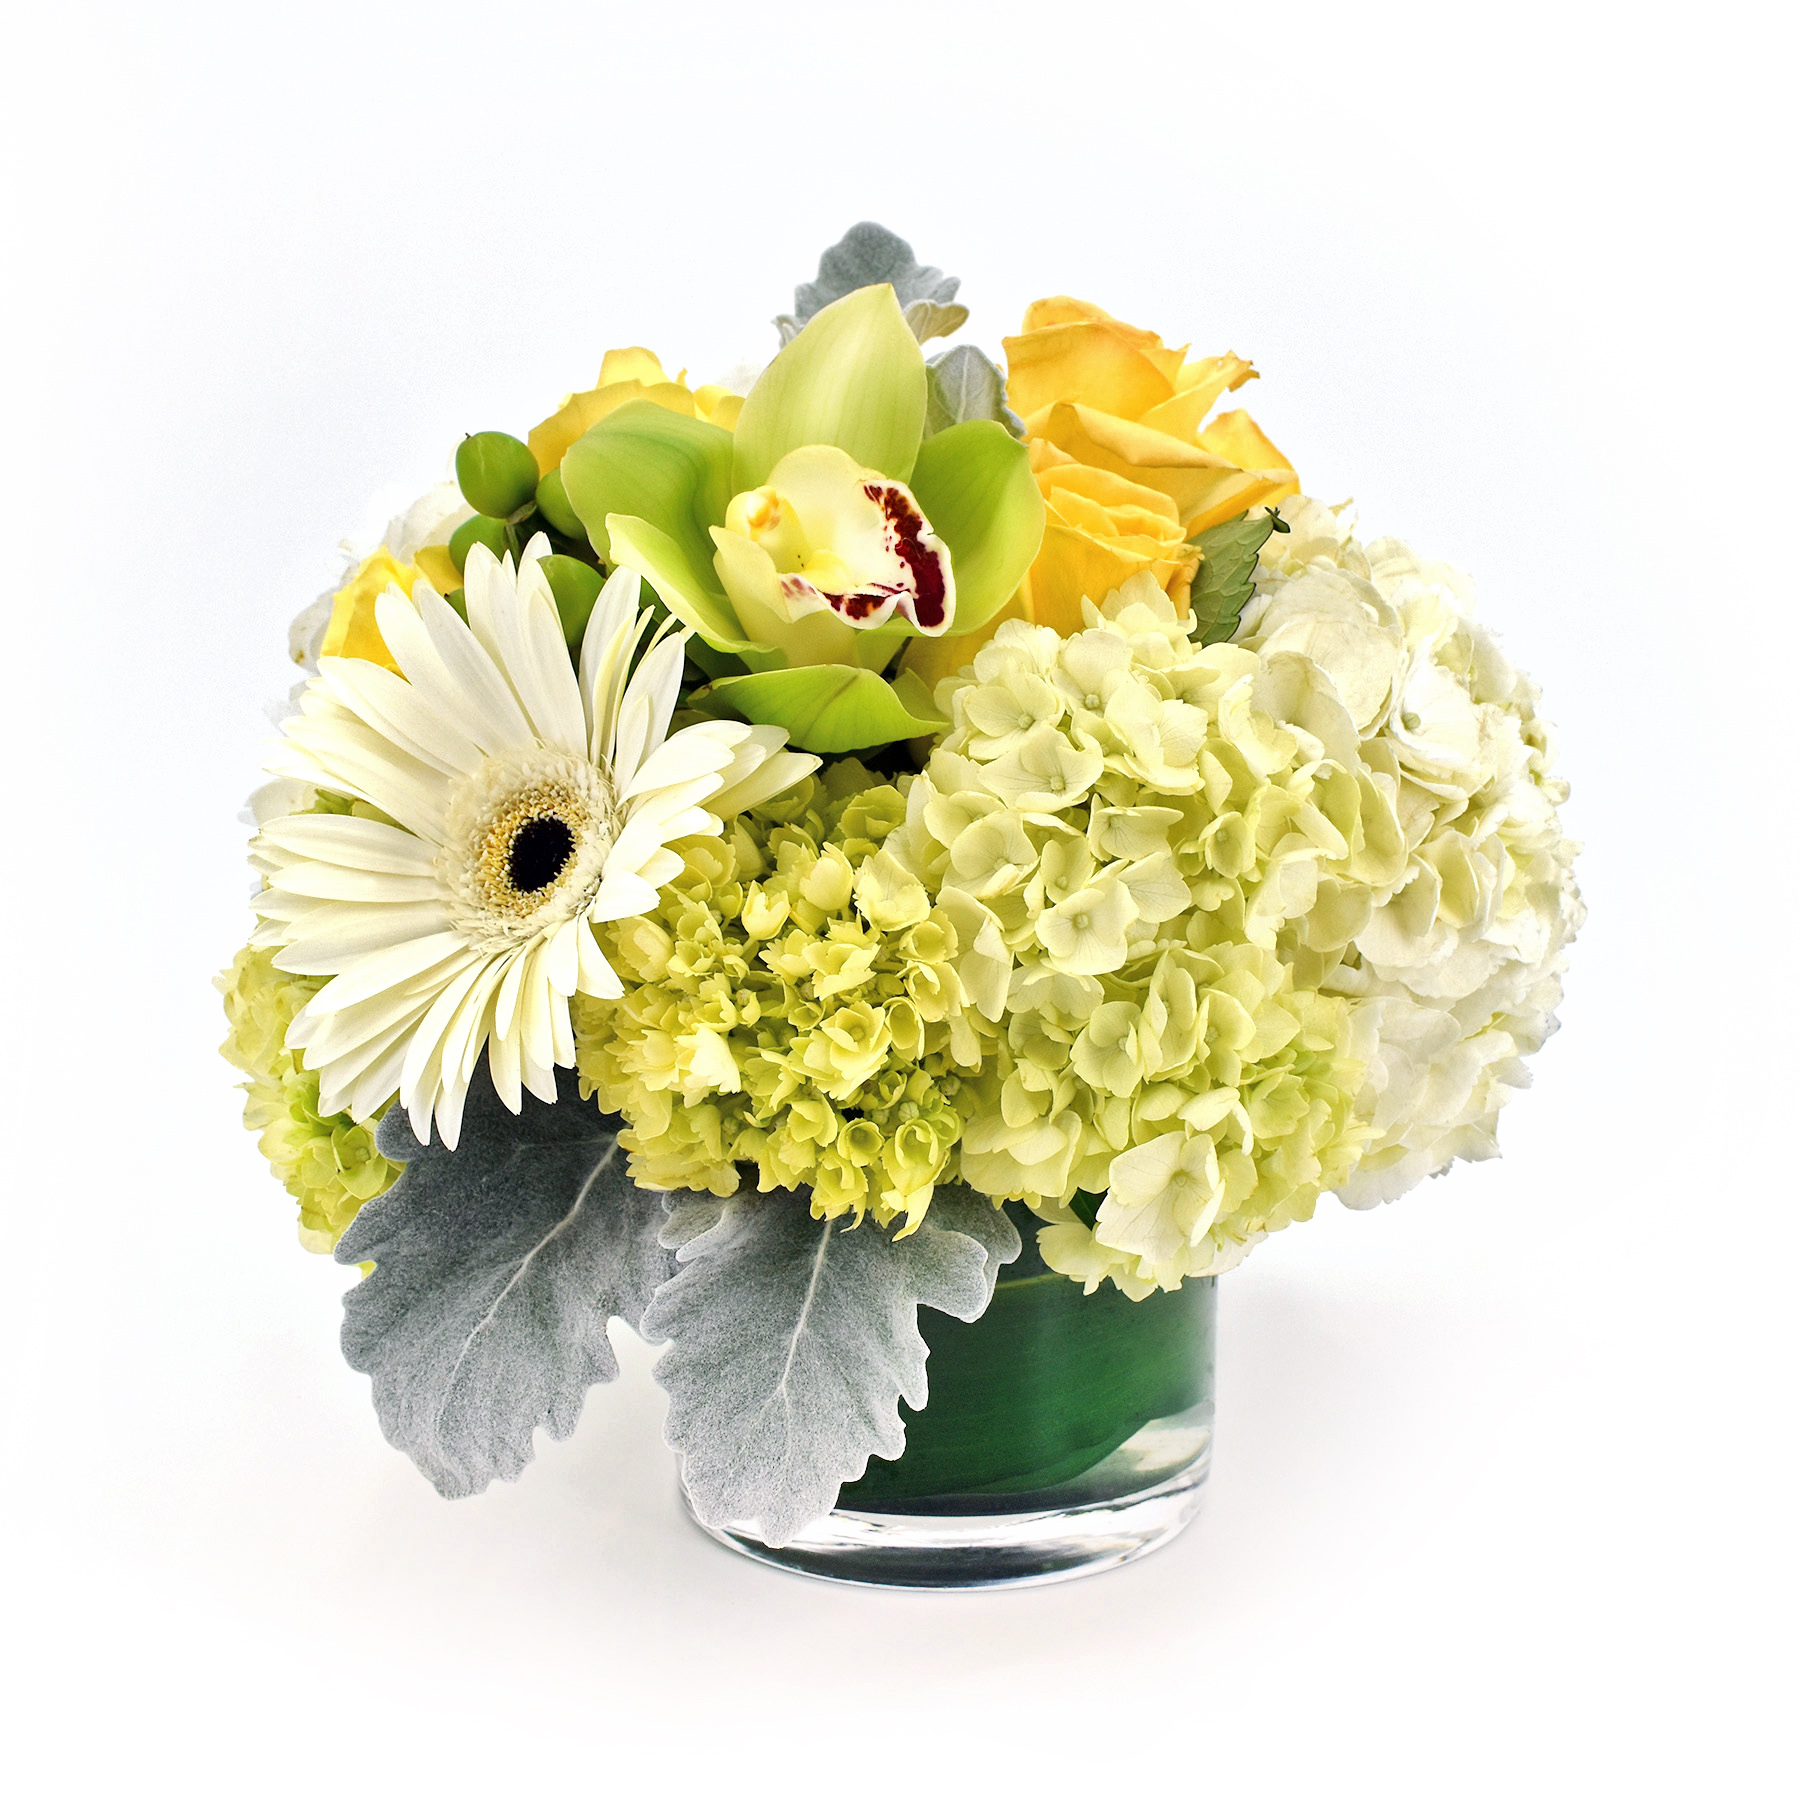 Palmer's Flower Shop - Florist - Darien Connecticut - Delivery - Fresh Flowers